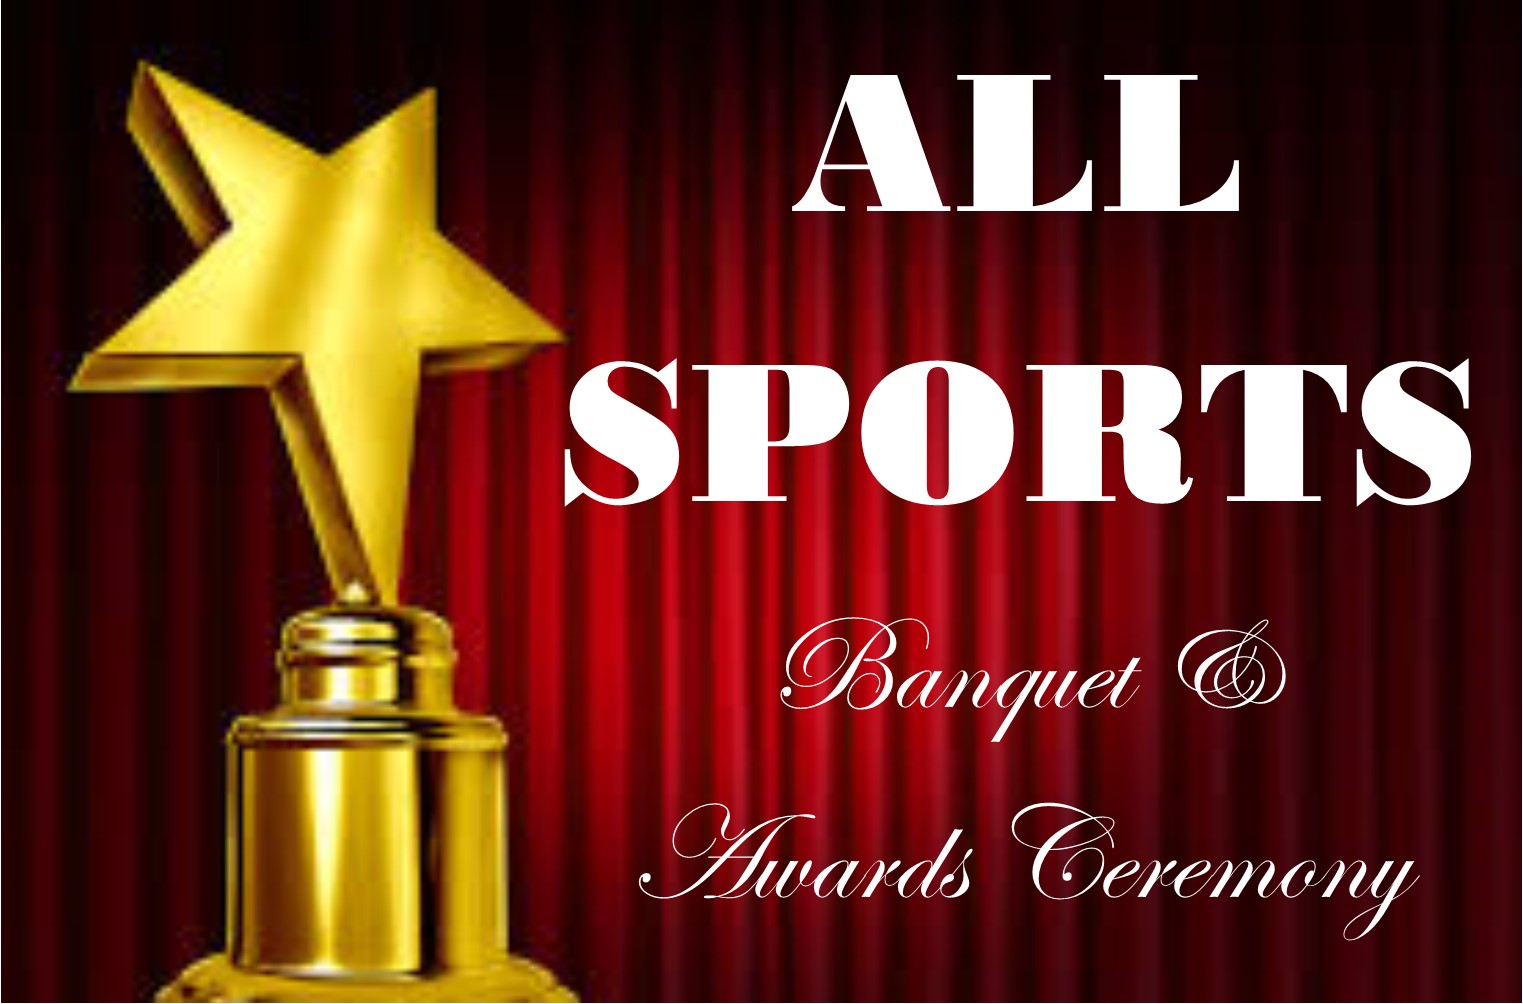 Fall All Sports Banquet – Monday, 11/19